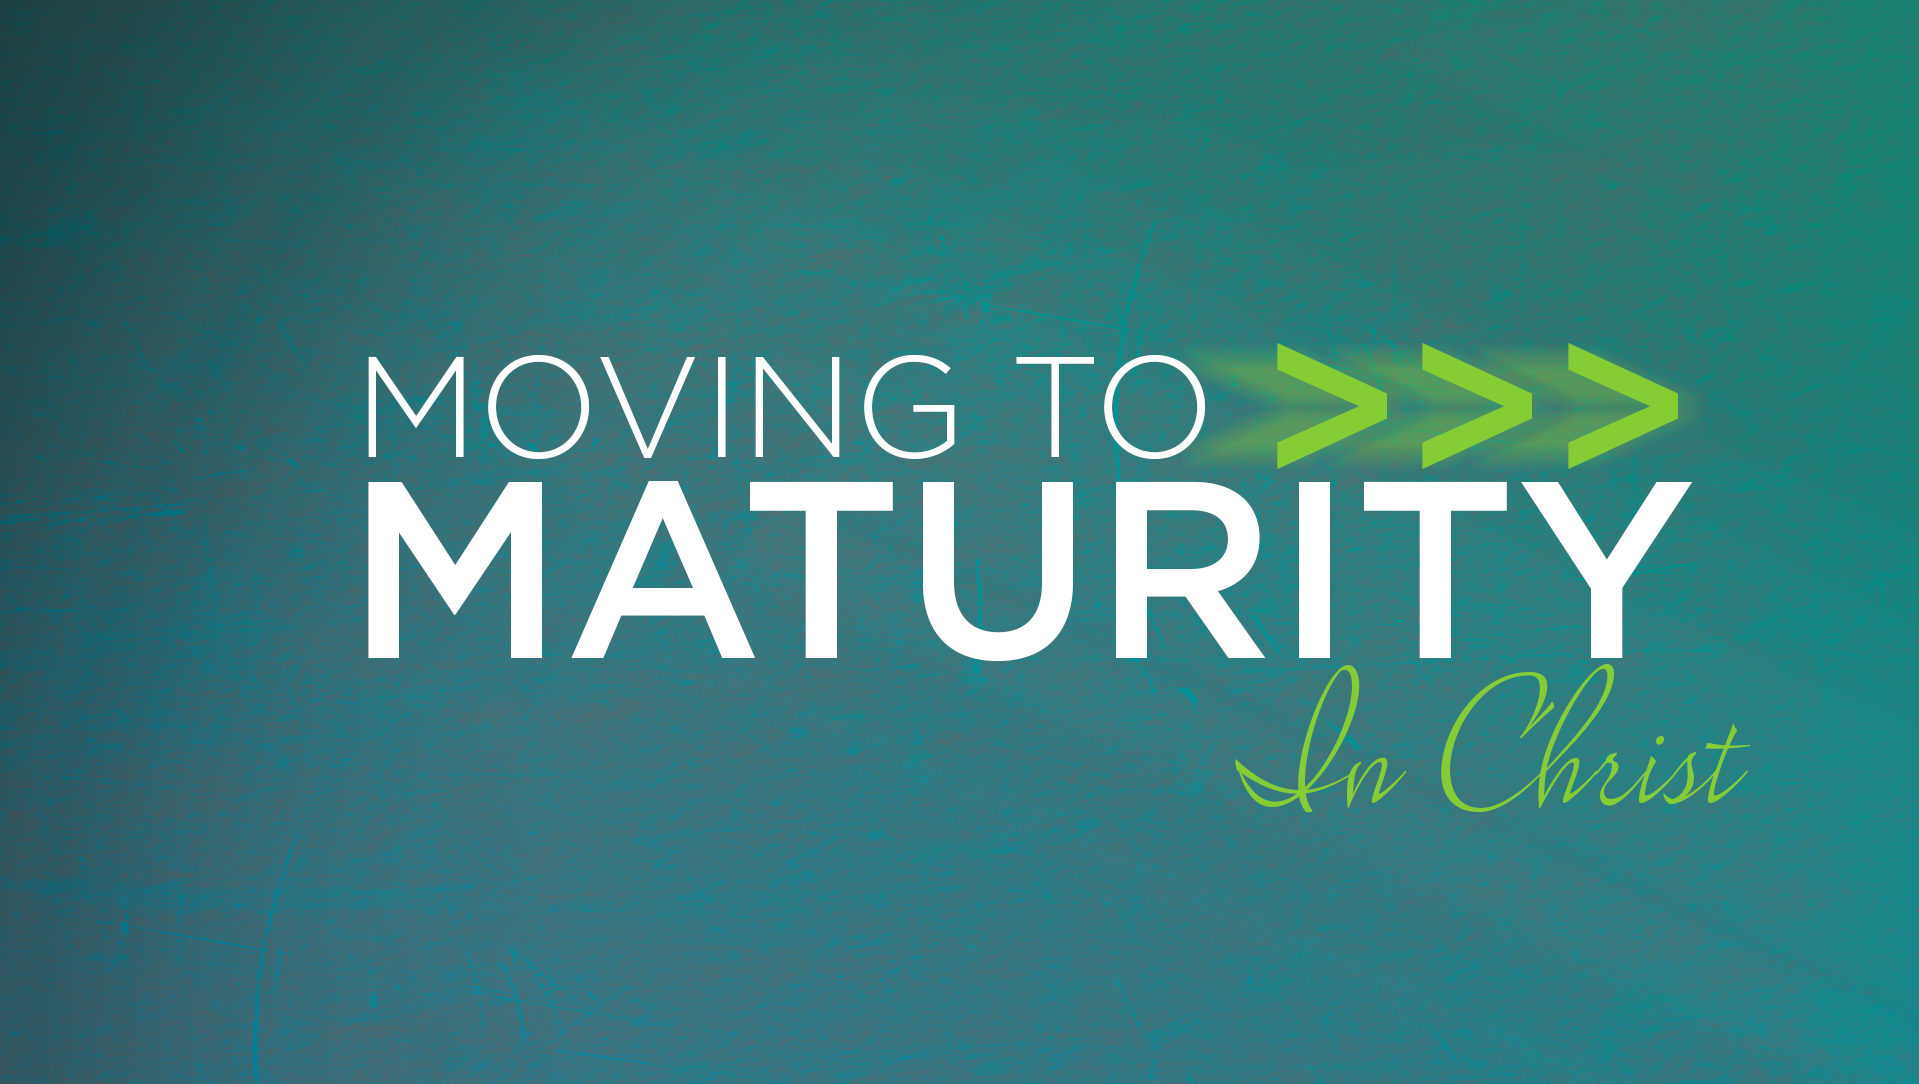 Moving to Maturity Course - 7 weeks